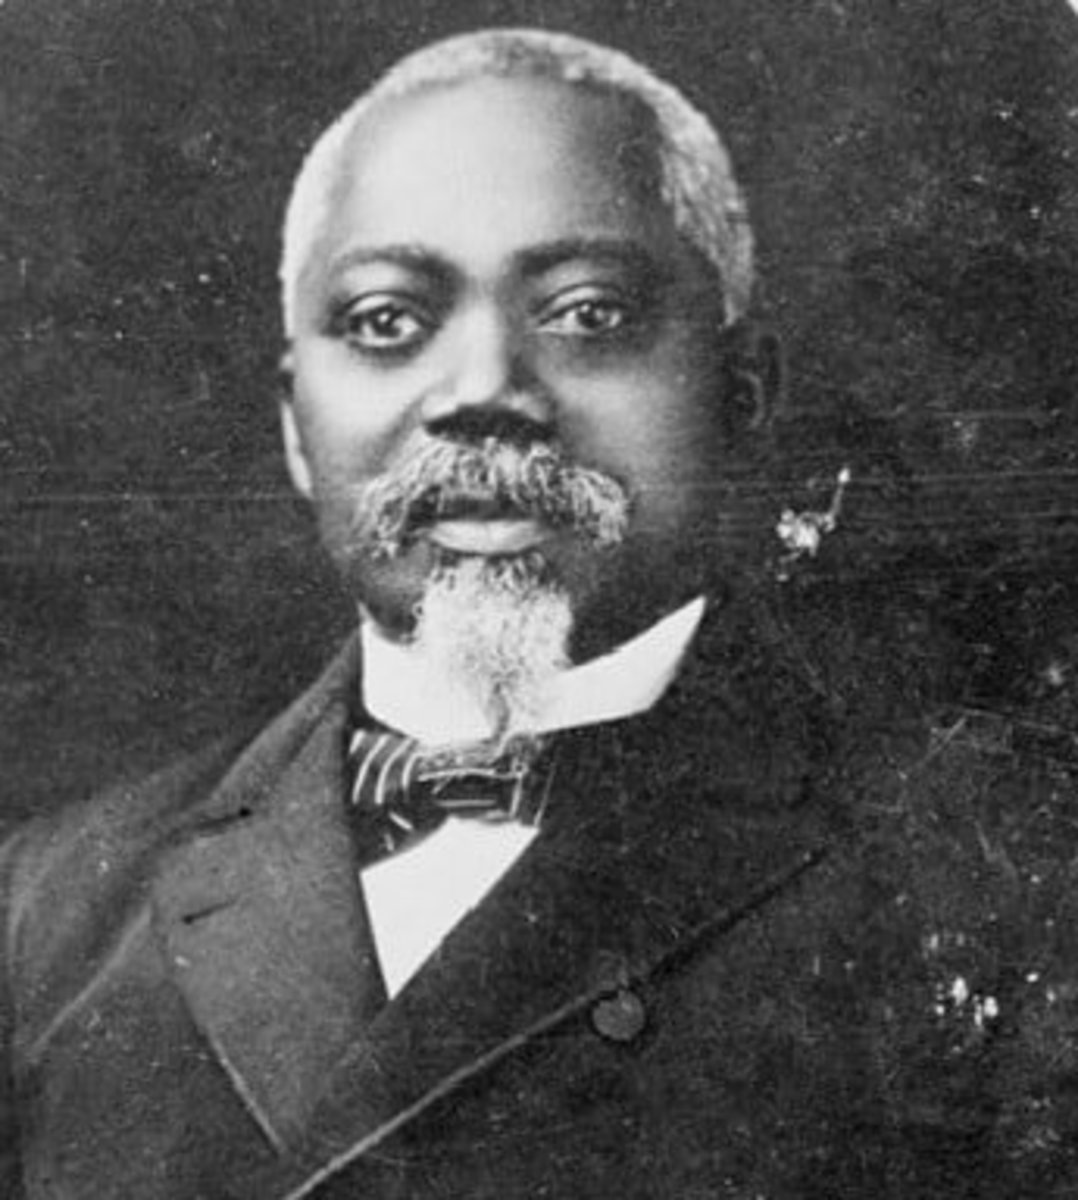 Sergeant William Carney After the Civil War